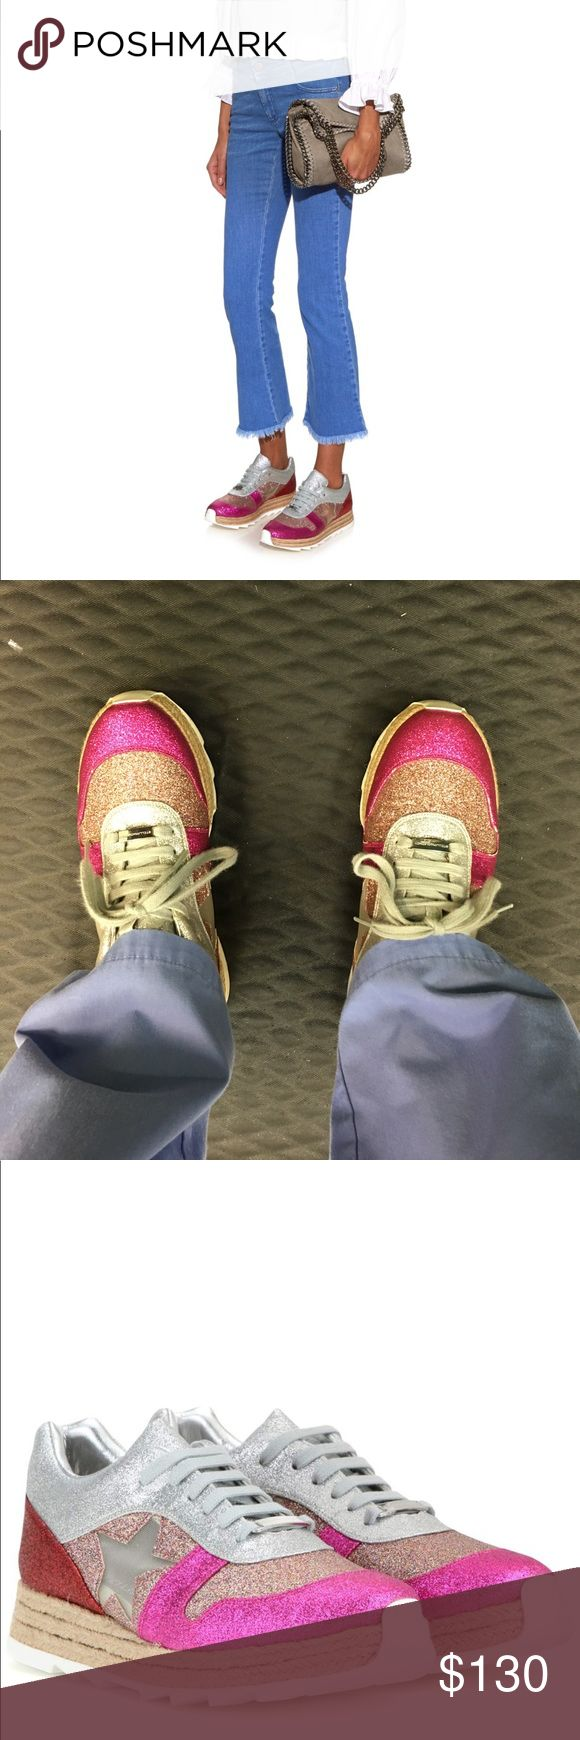 FINAL SALE 😎Stella McCartney Glitter Sneakers Reposhing because they're too tight on me !!! Grr I really love the look of these. In great condition, previous owner used a couple times. Stella McCartney Shoes